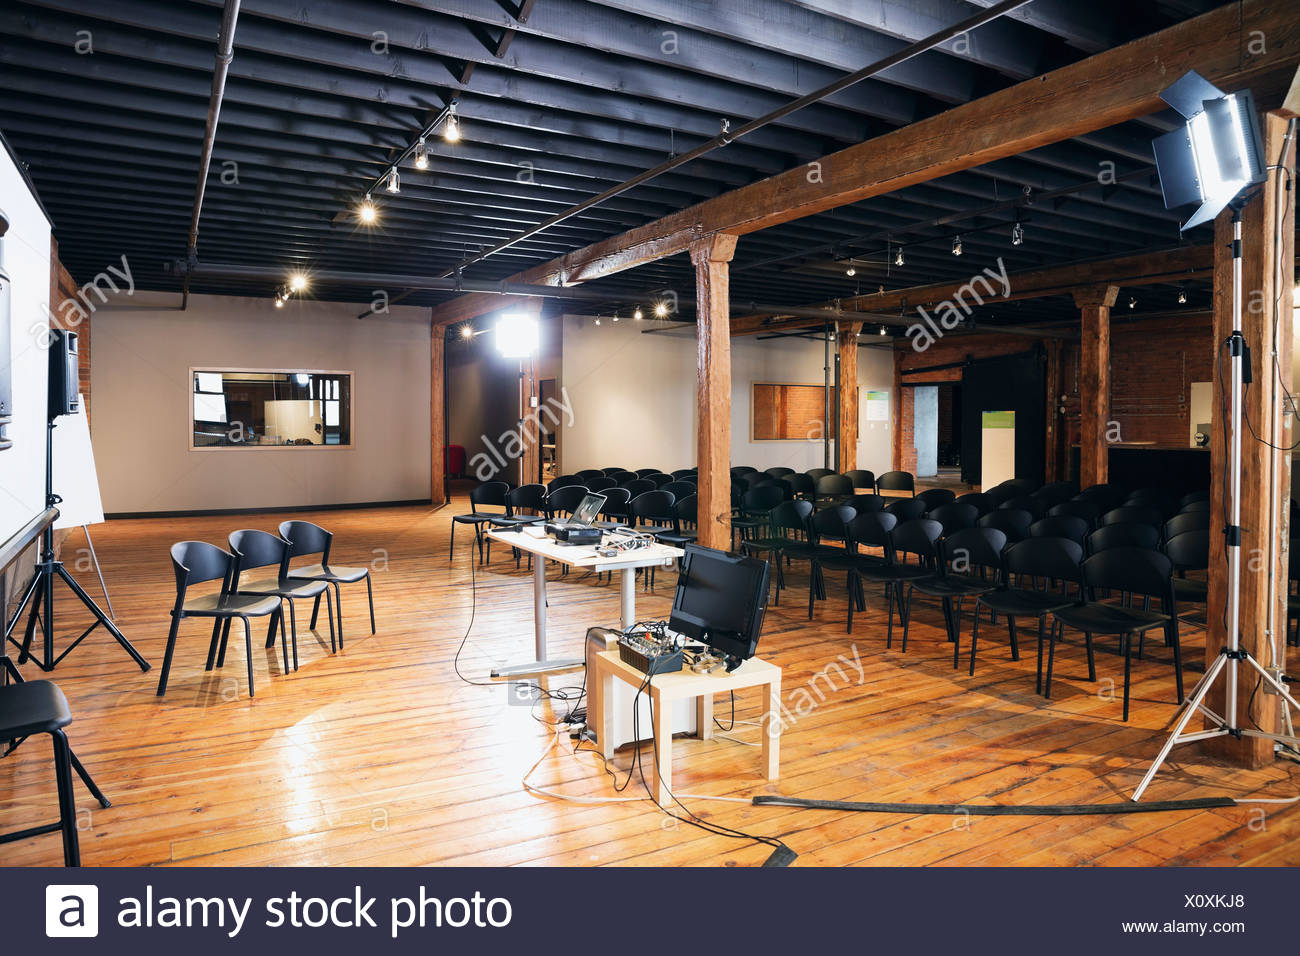 Interior of conference room with projection screen and chairs - Stock Image